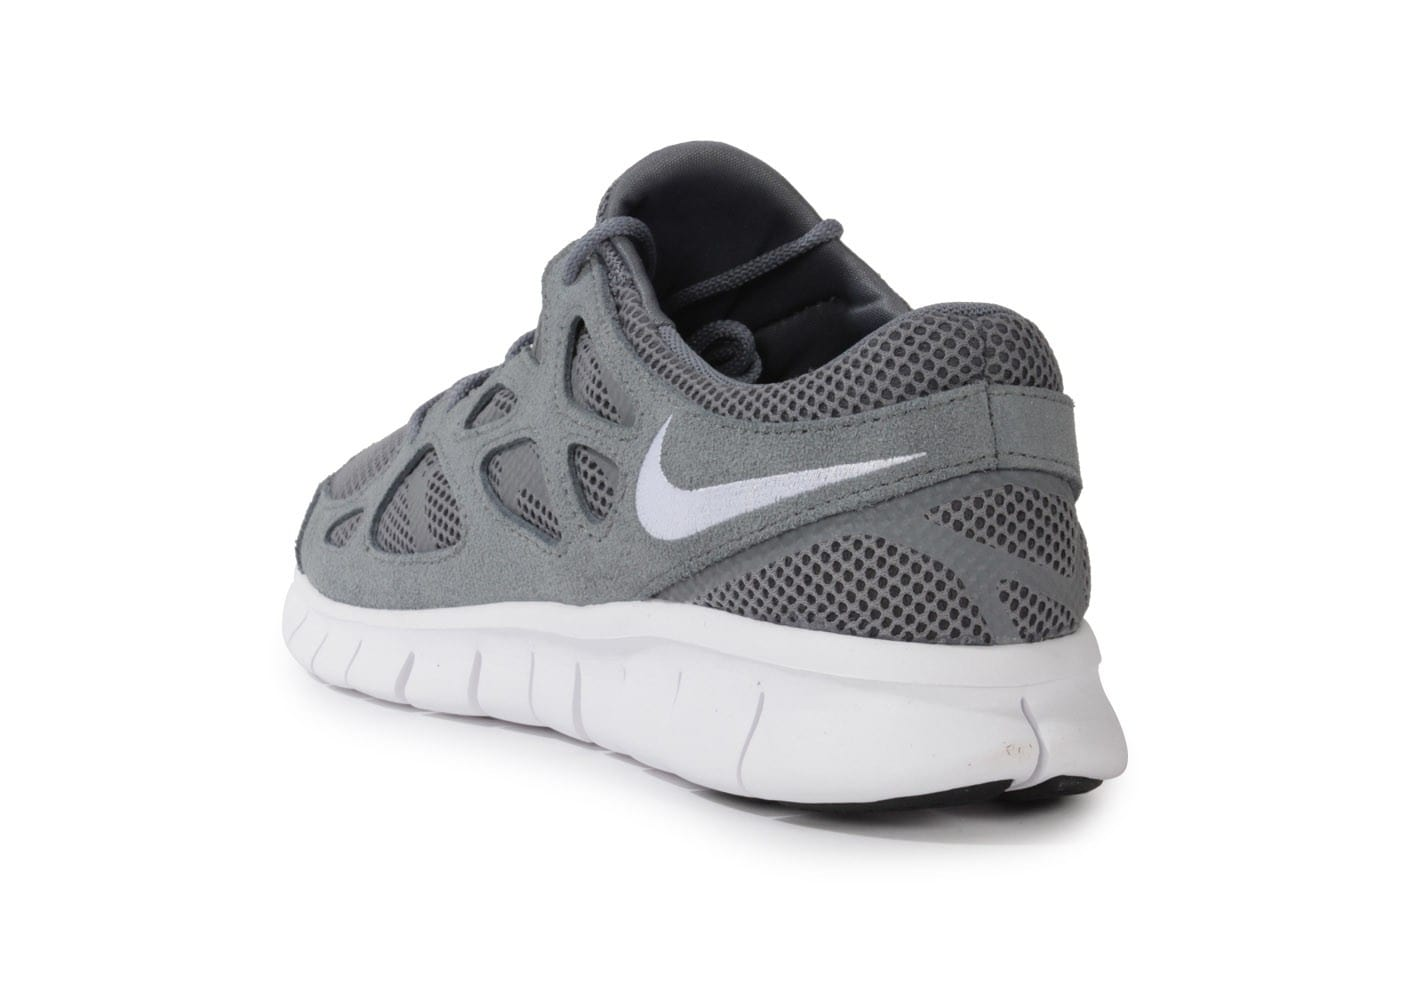 best cheap 4aa6a 39213 ... Chaussures Nike Free Run 2 Grise vue arrière ...